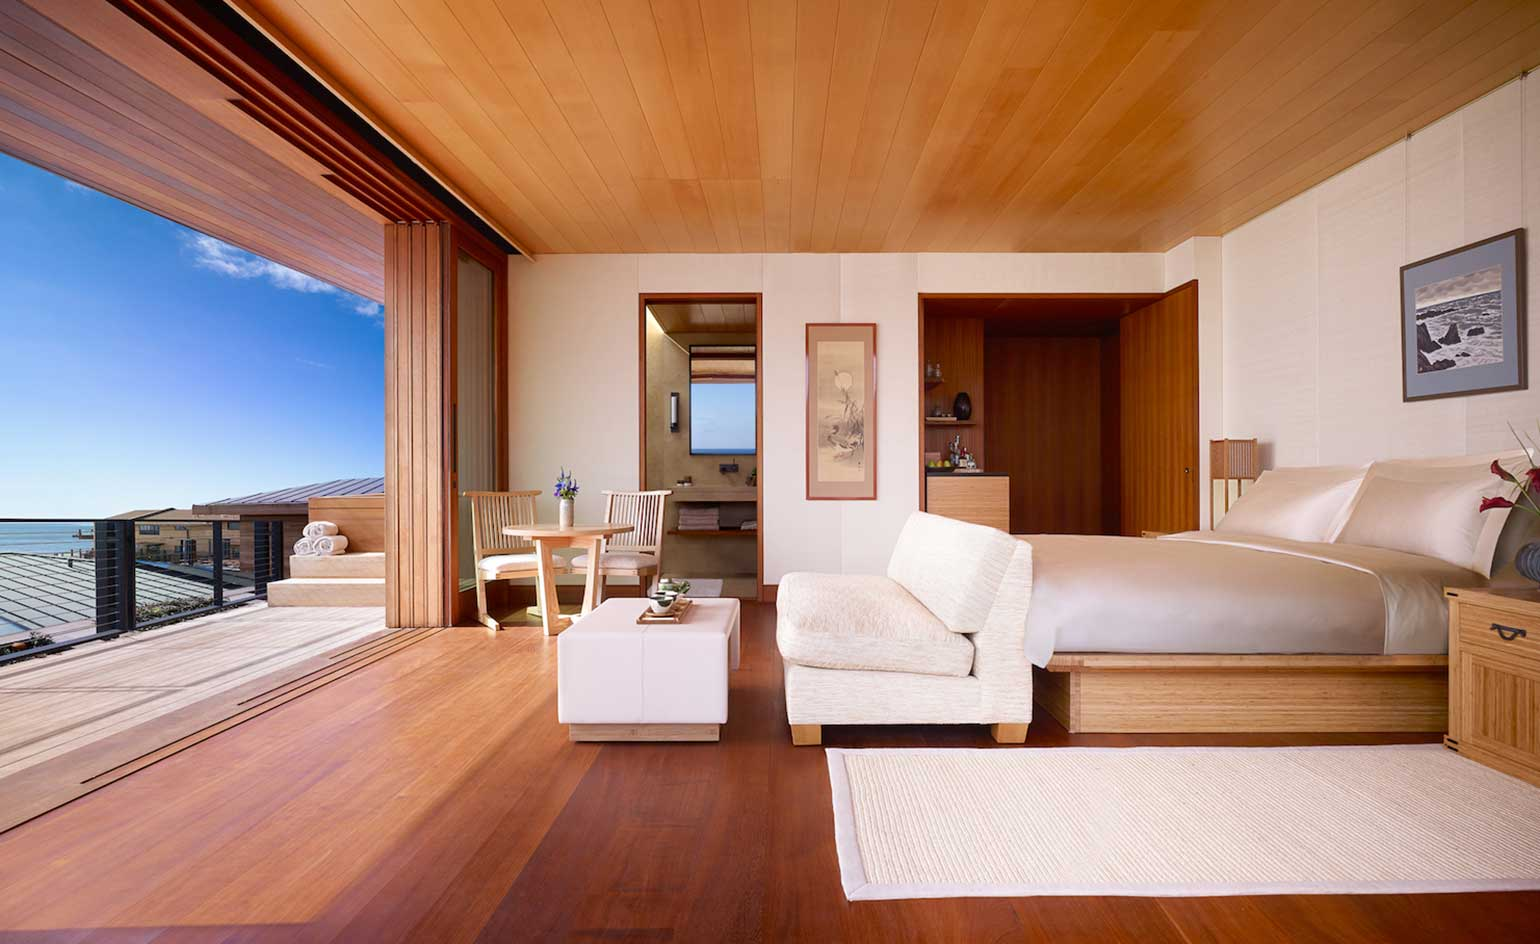 Nobu Ryokan Hotel Review Malibu Usa Wallpaper